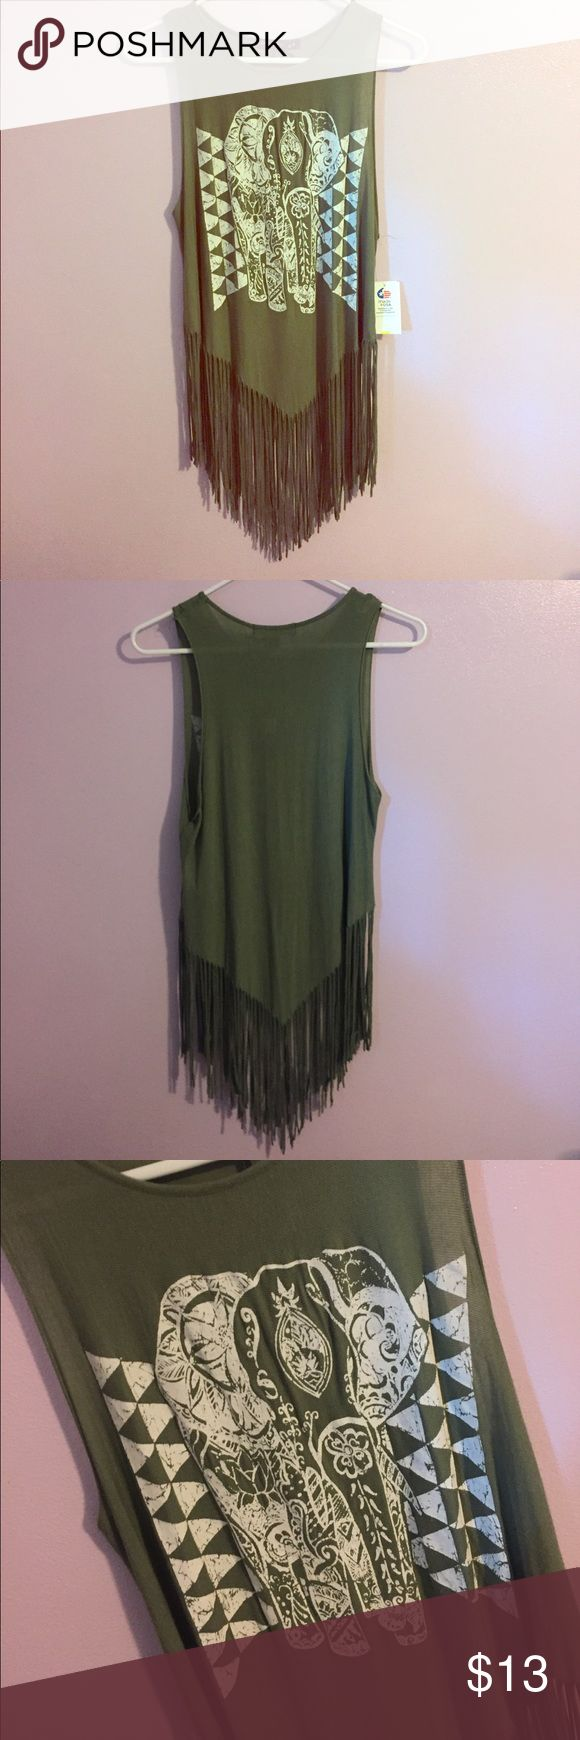 Living Doll olive green elephant fringe tank Living Doll olive green elephant fringe tank. Very soft material. Perfect for a festival or concert. NWT. Living Doll Tops